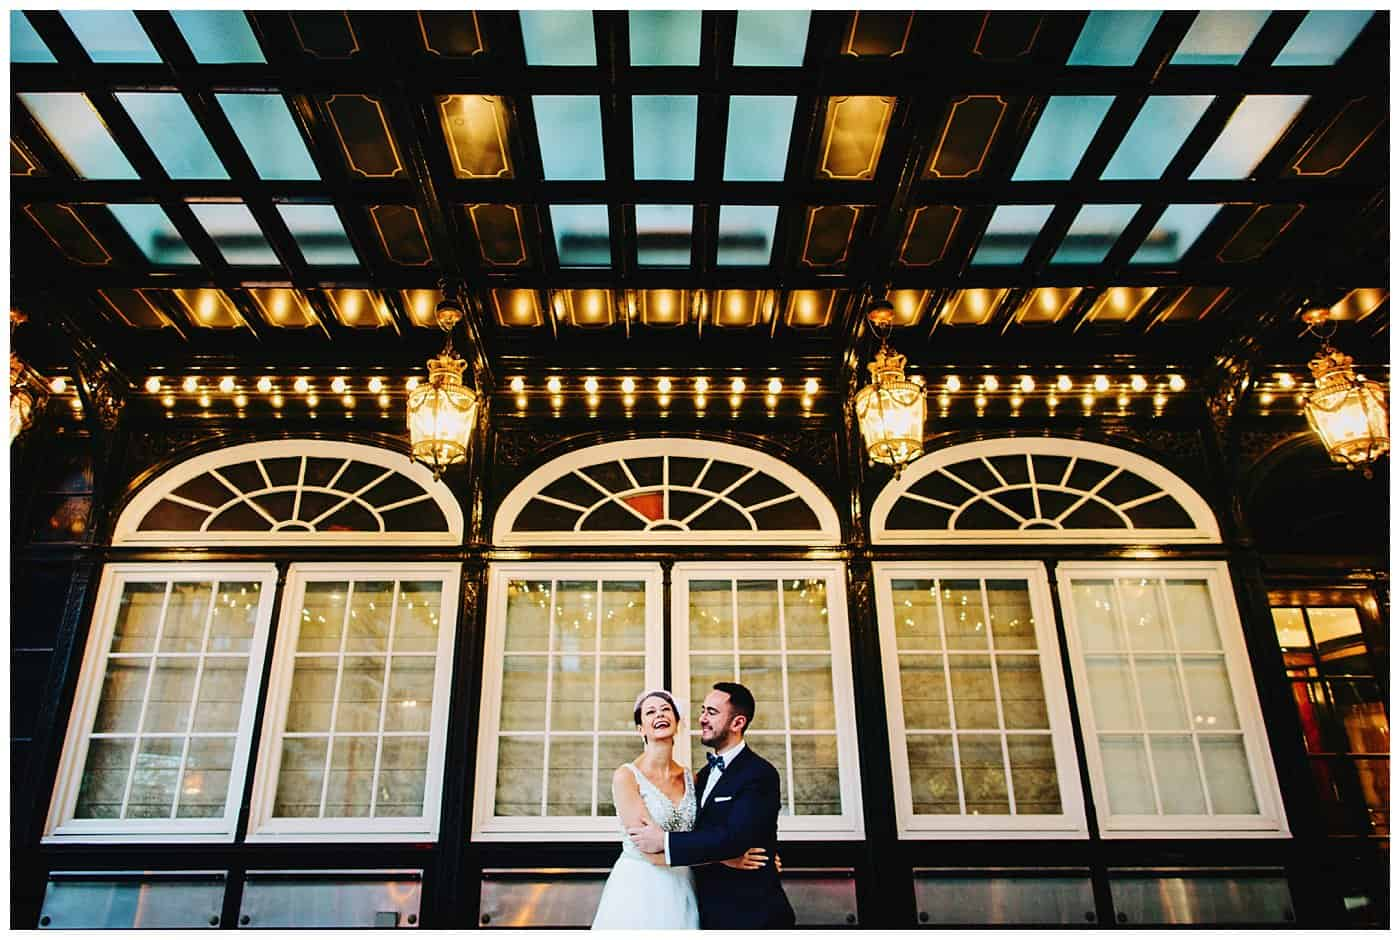 Ritz carlton Montreal Wedding Photo